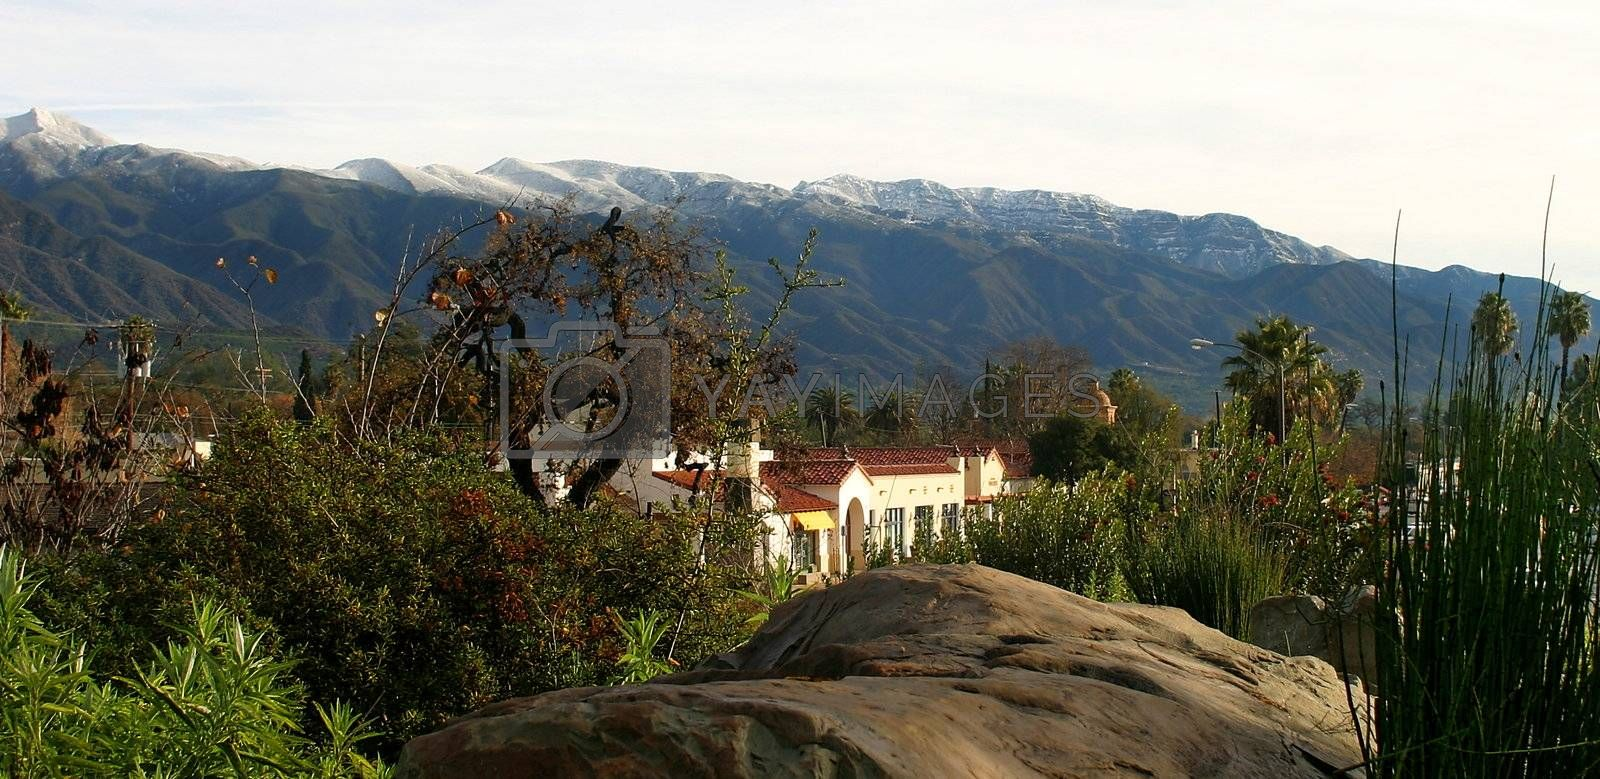 Ojai With Snow (4301) by hlehnerer